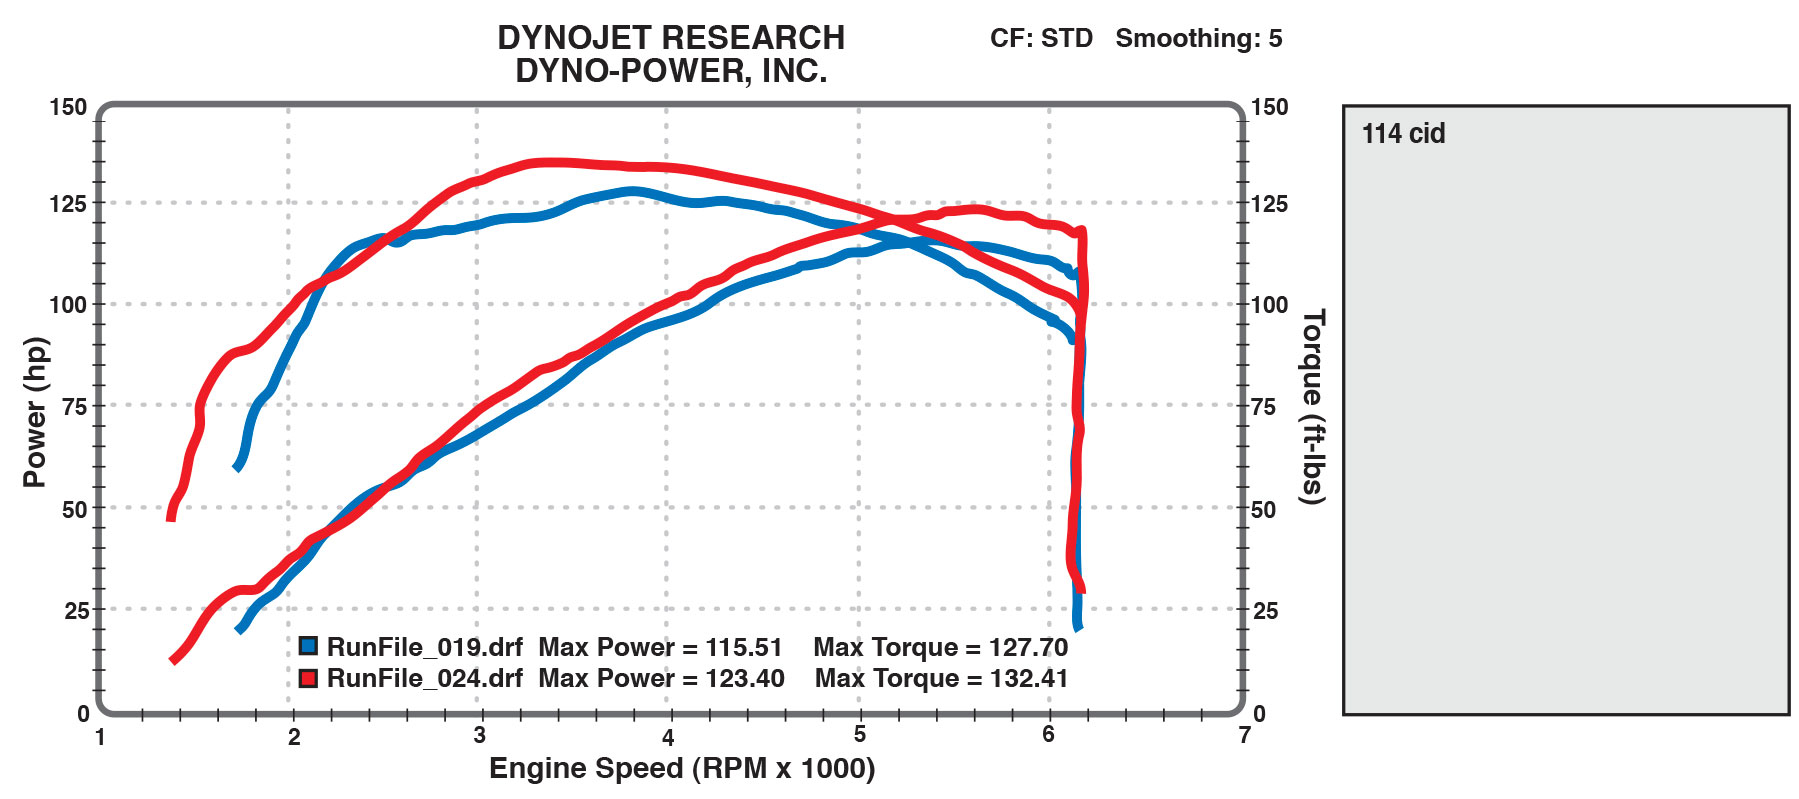 114cid dyno - Dyno Power